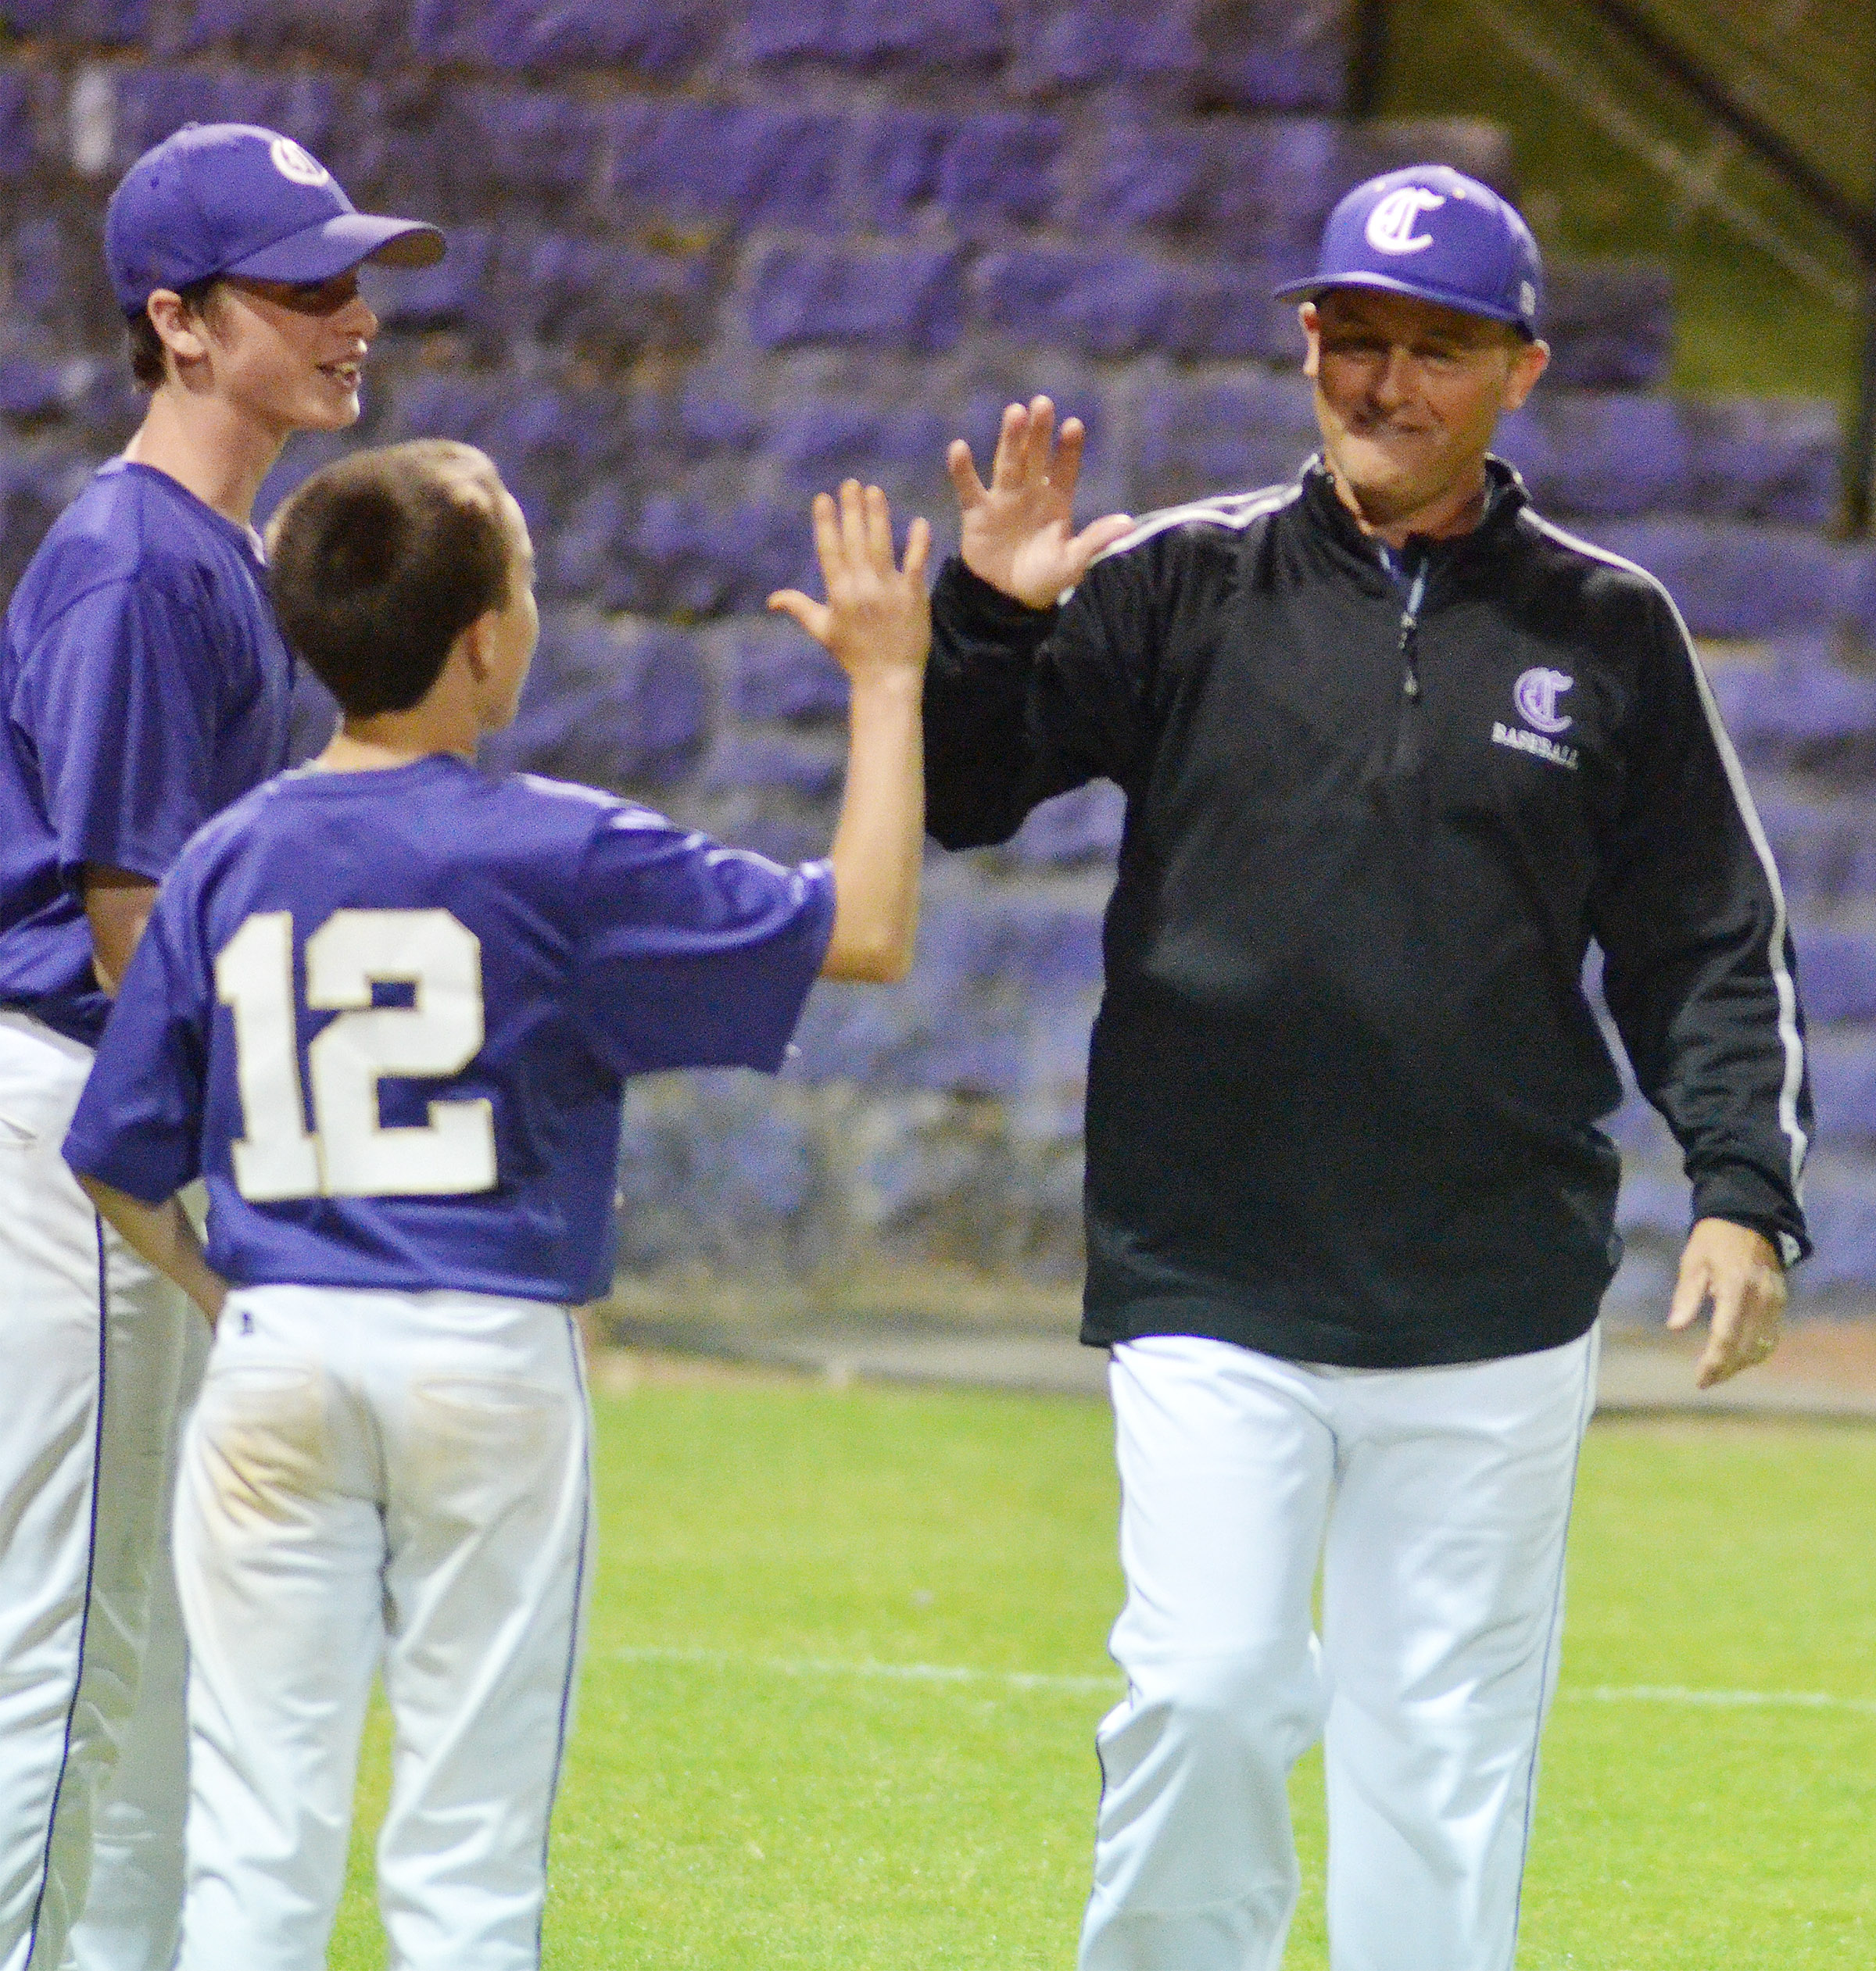 CMS head baseball coach Lynn Kearney high fives sixth-grader Chase Hord after the win.